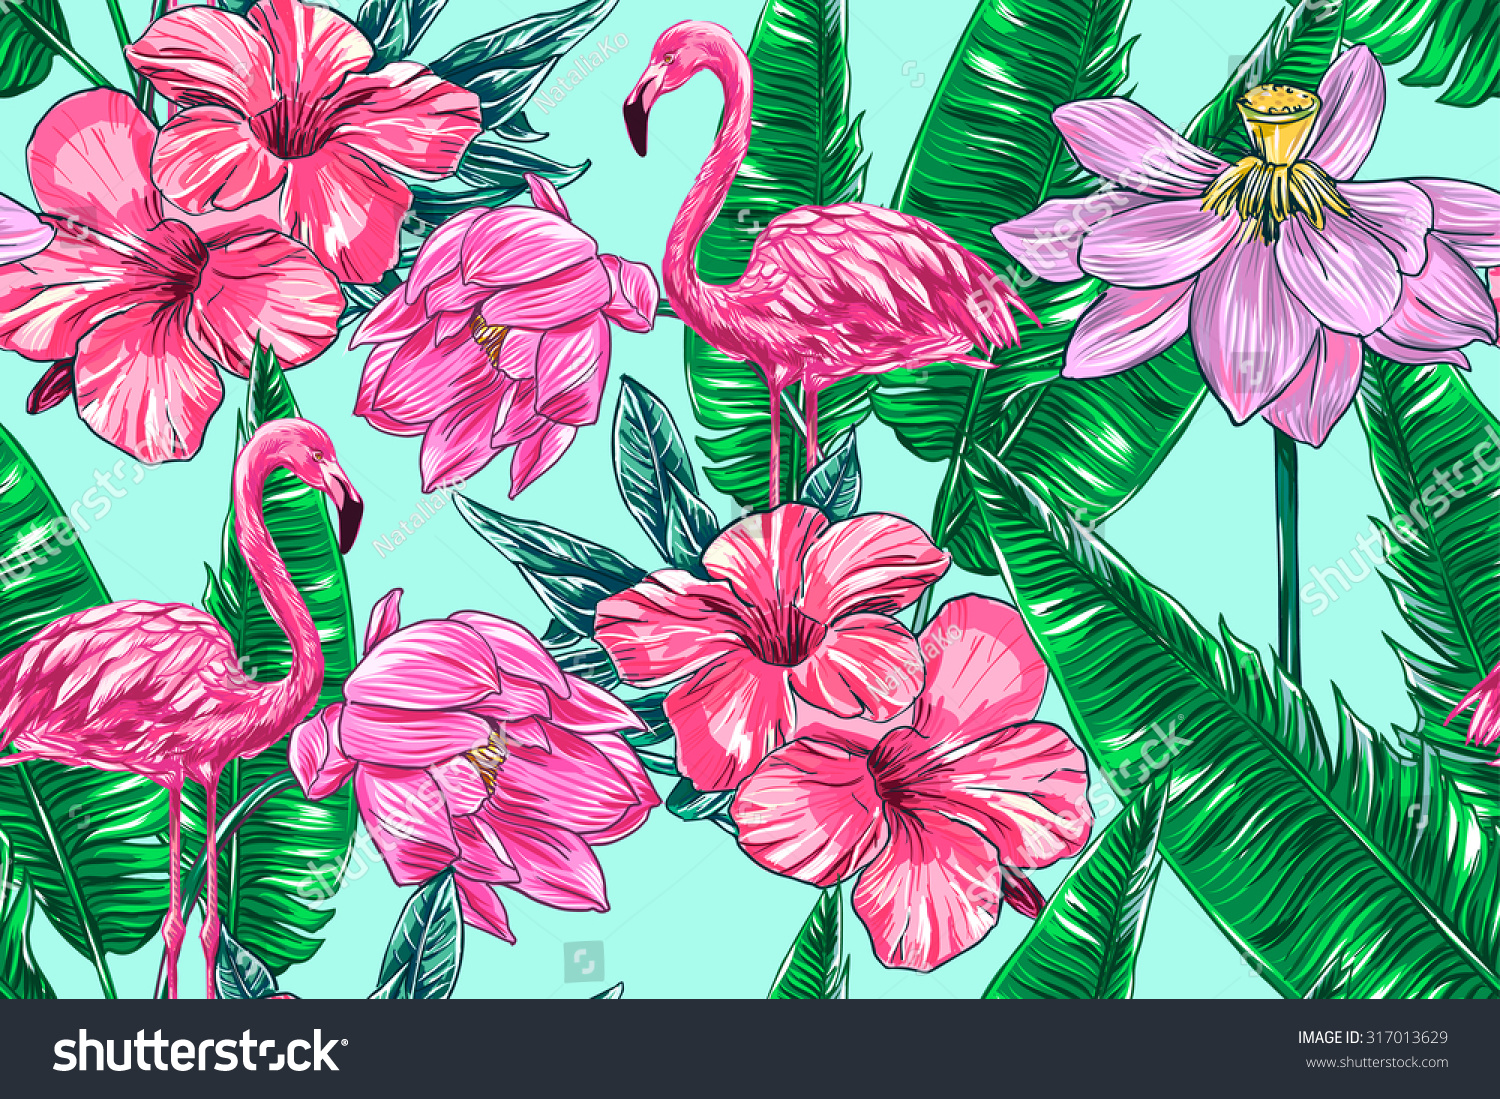 Royalty Free Pink Flamingos Tropical Flowers And 317013629 Stock